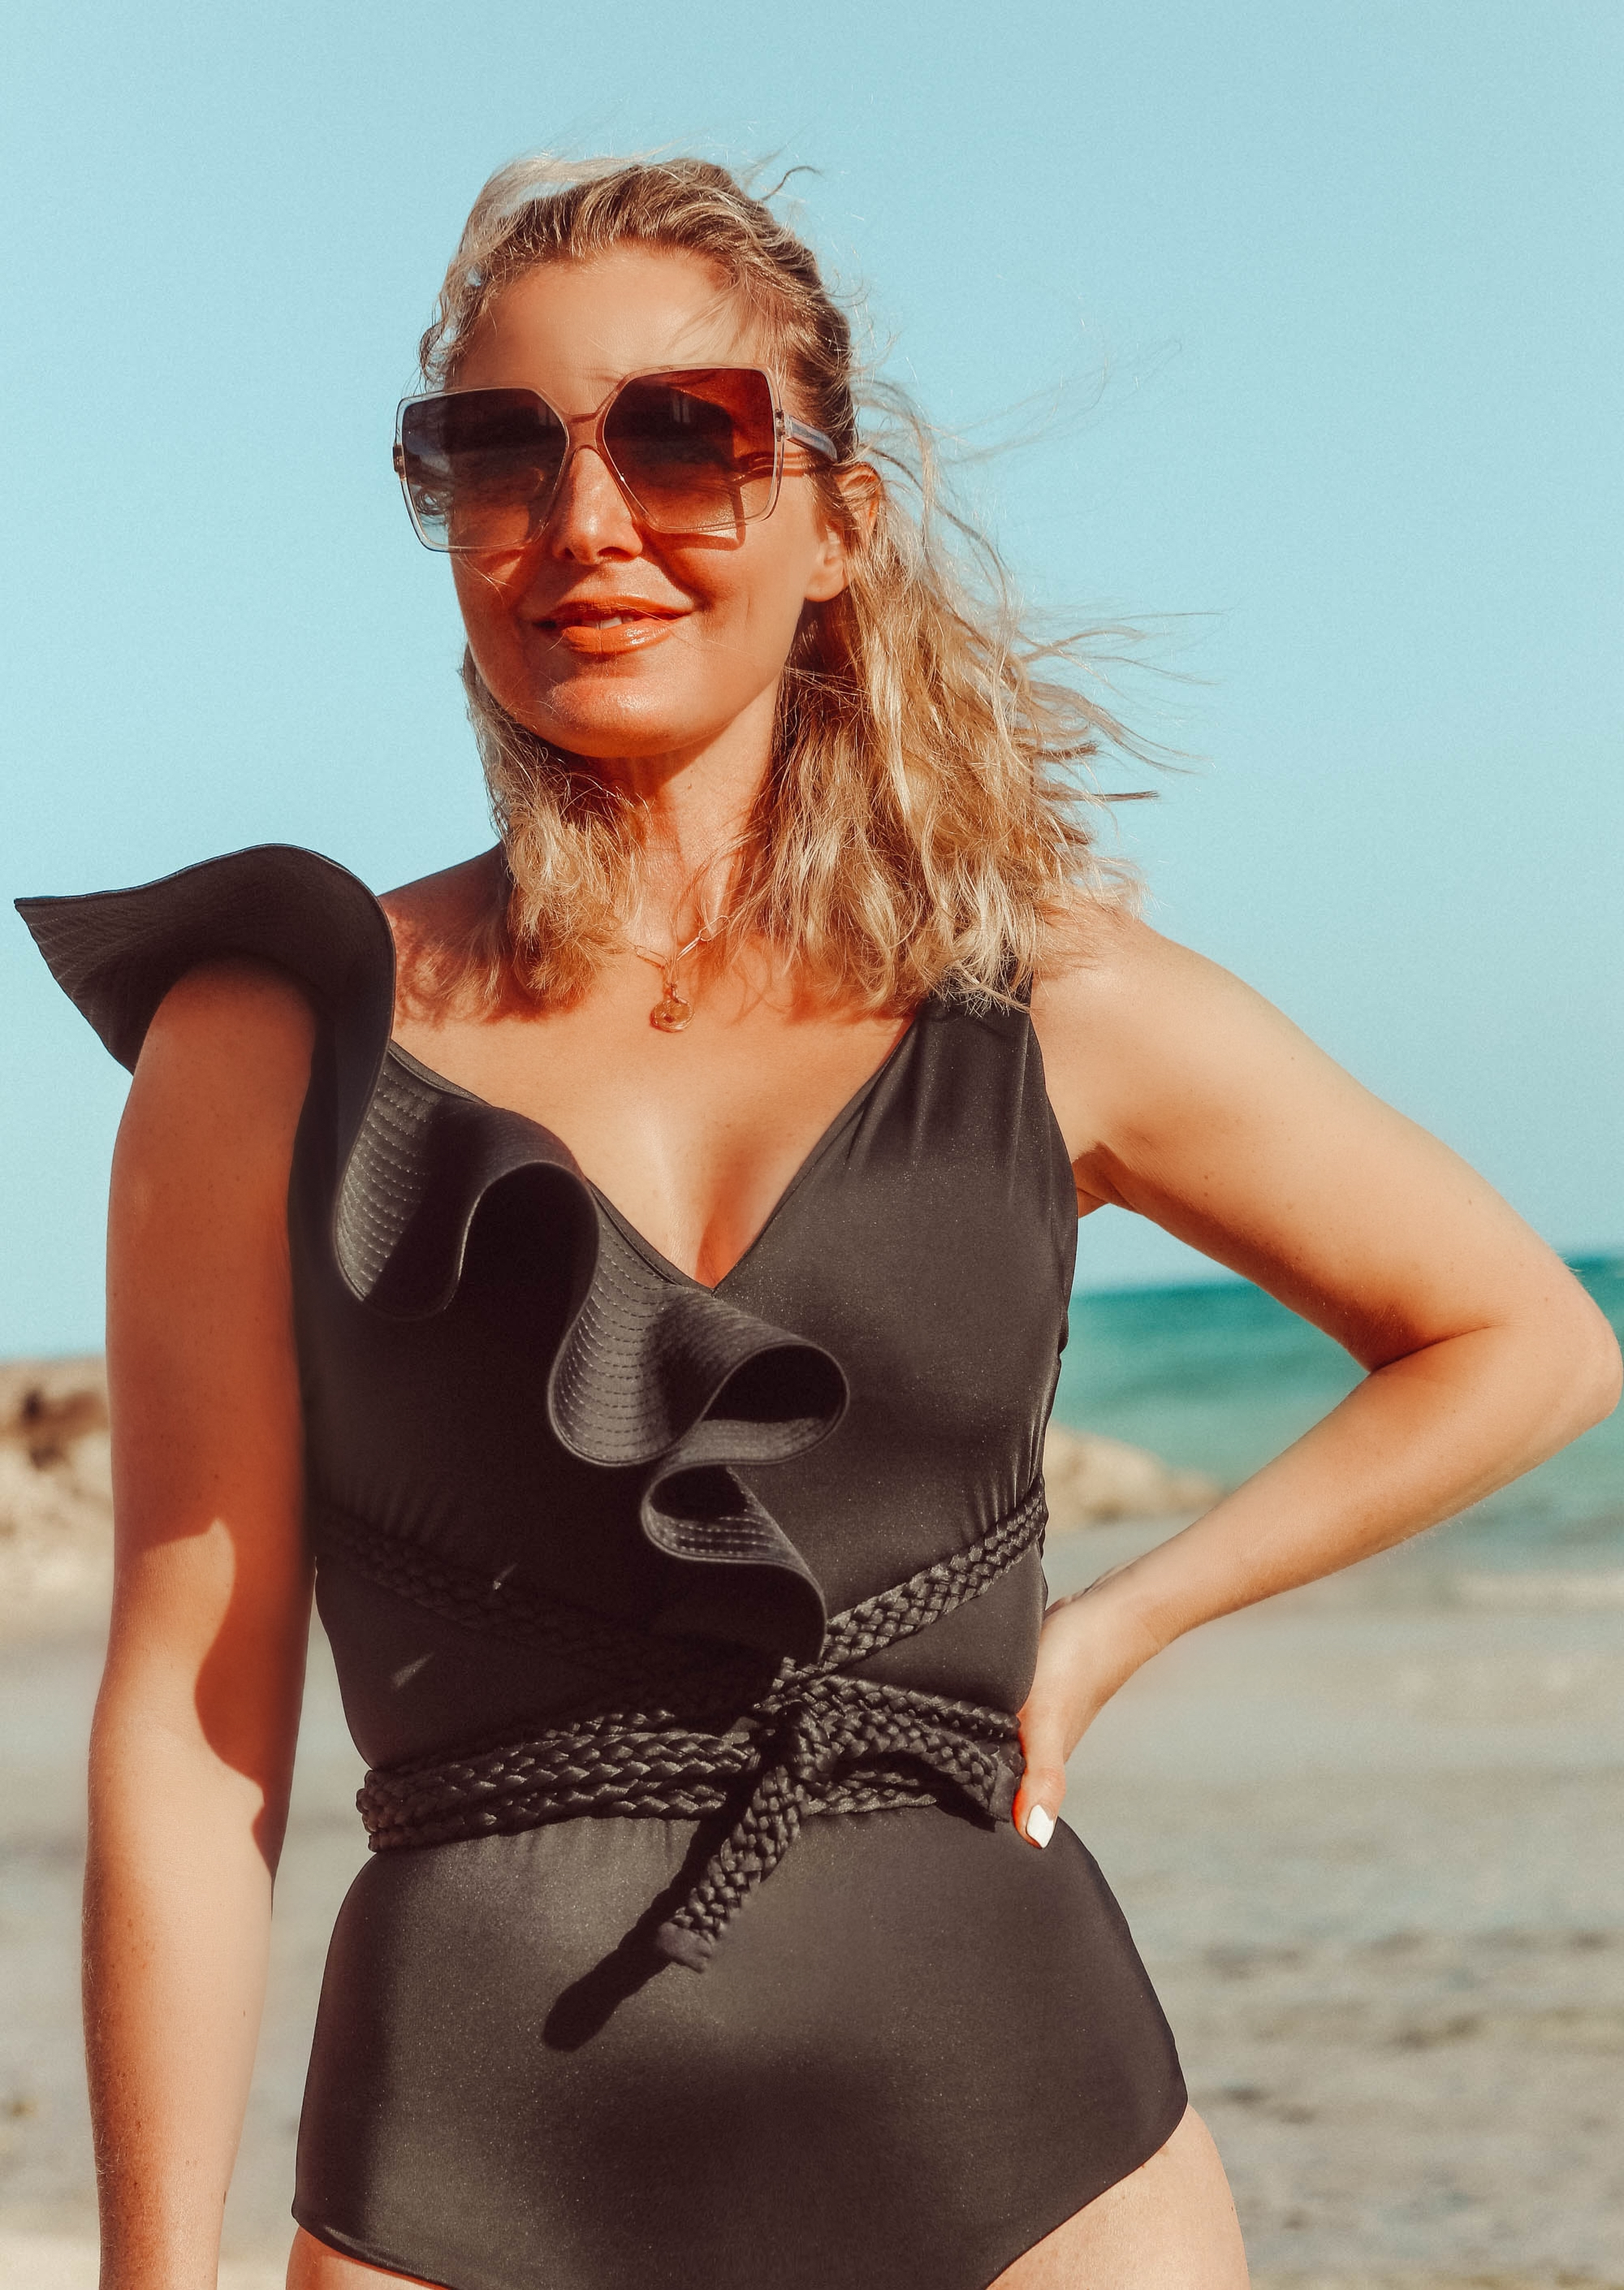 Flattering Swimsuits for women over 40, Fashion blogger Erin Busbee of BusbeeStyle.com wearing a ruffled one shoulder bikini by Johanna Ortiz with matching brown bikini bottoms in the Bahamas